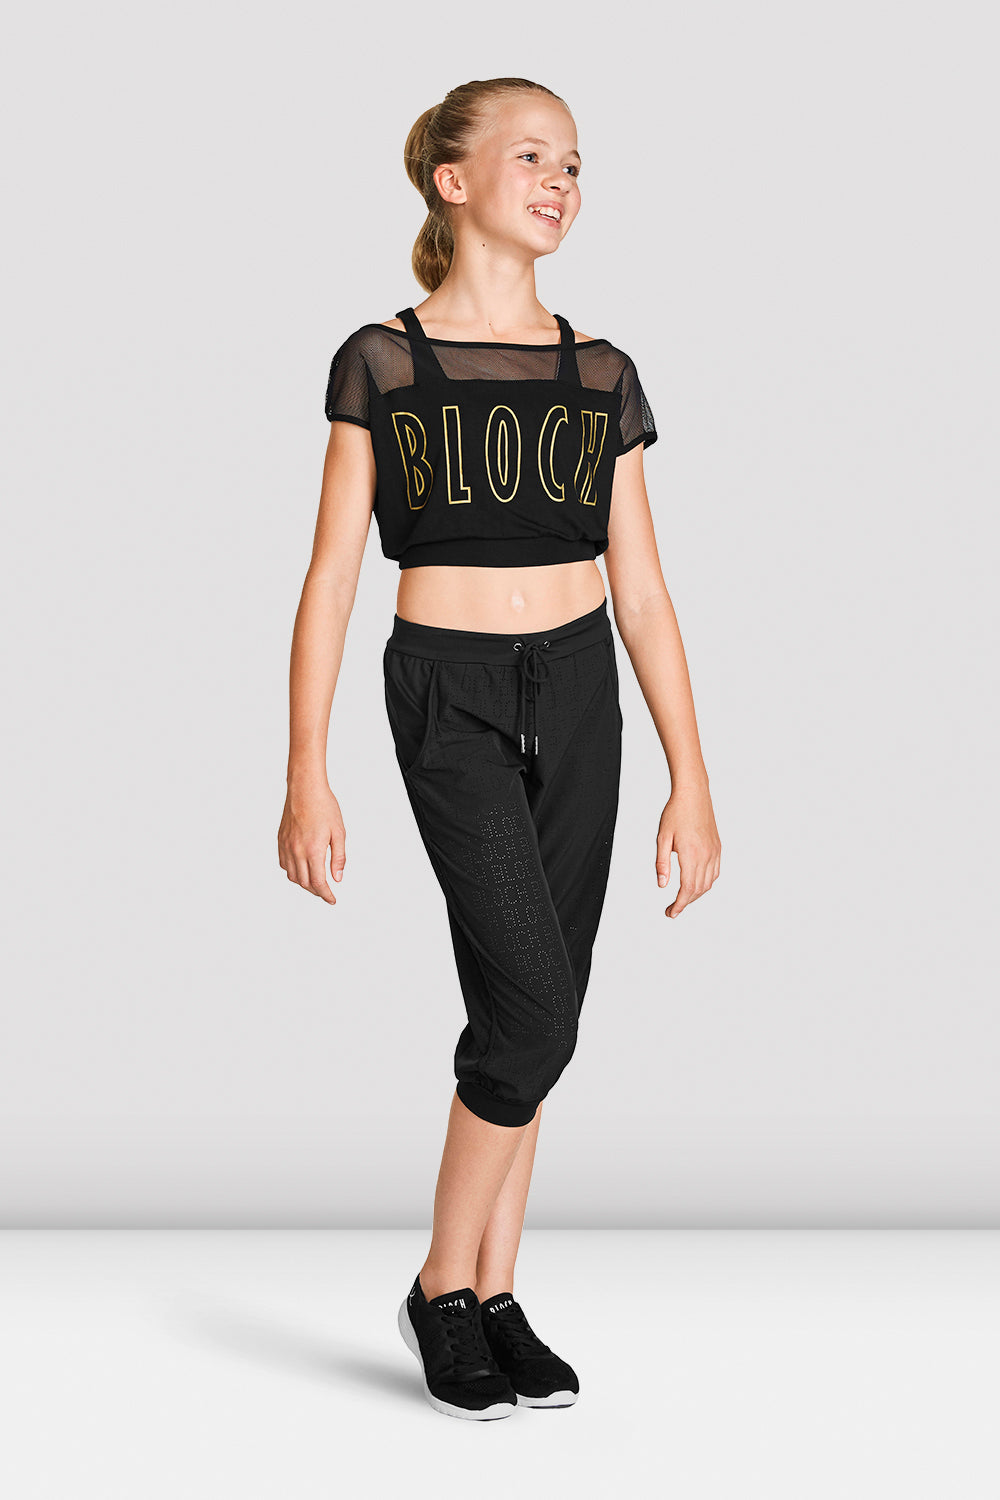 Girls Crop Pant - BLOCH US